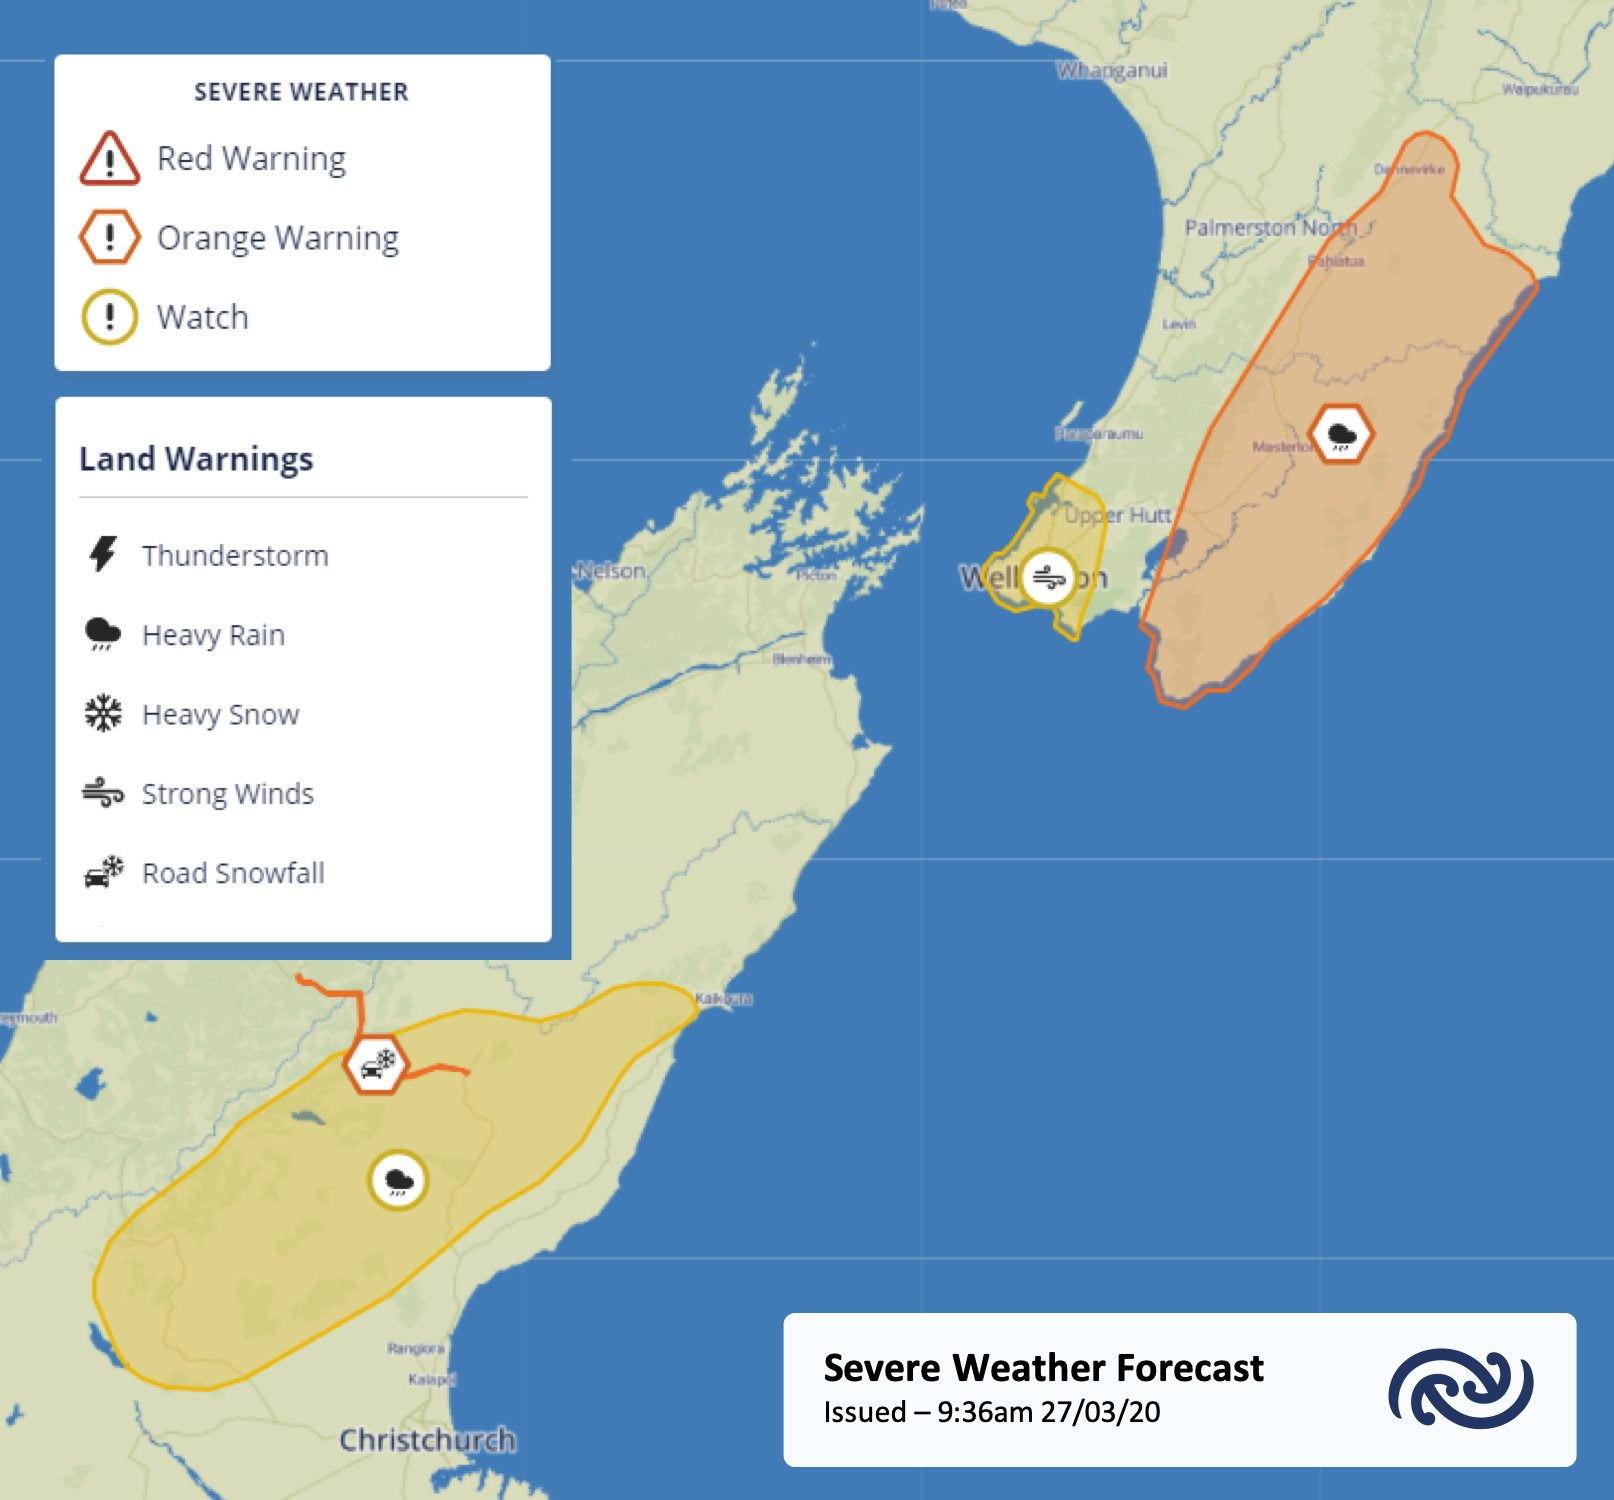 A handful of watches and warnings issued for Aotearoa. Details at bit.ly/AllWarnings   Kia haumaru!   ^Tui https://t.co/pFUmnAqkbV